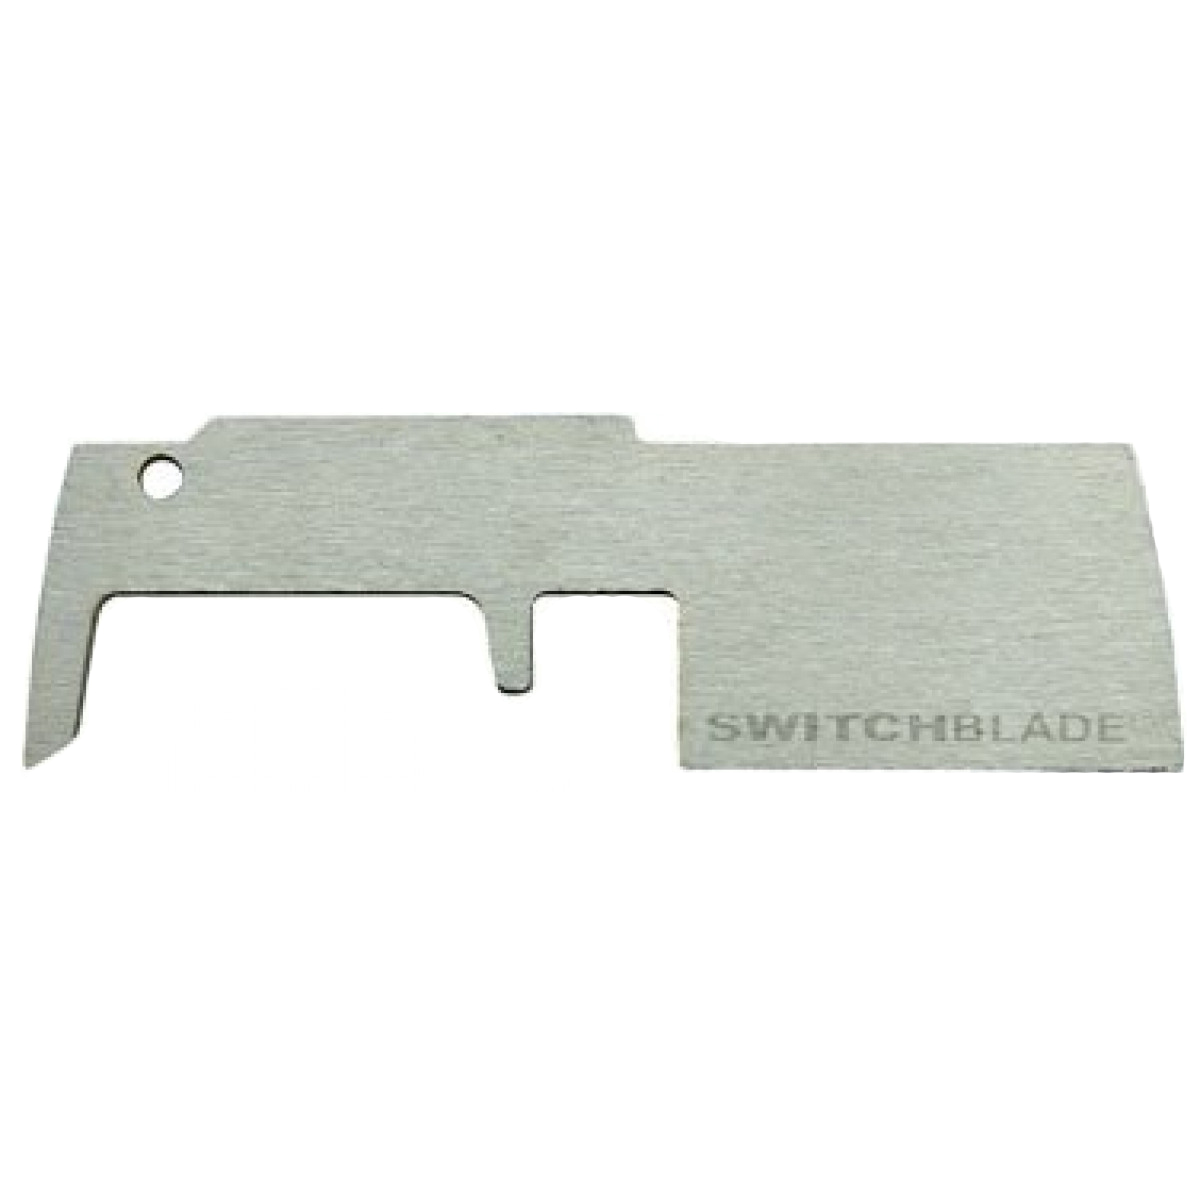 Milwaukee® SWITCHBLADE™ 48-25-5443 Self-Feed Replacement Blade